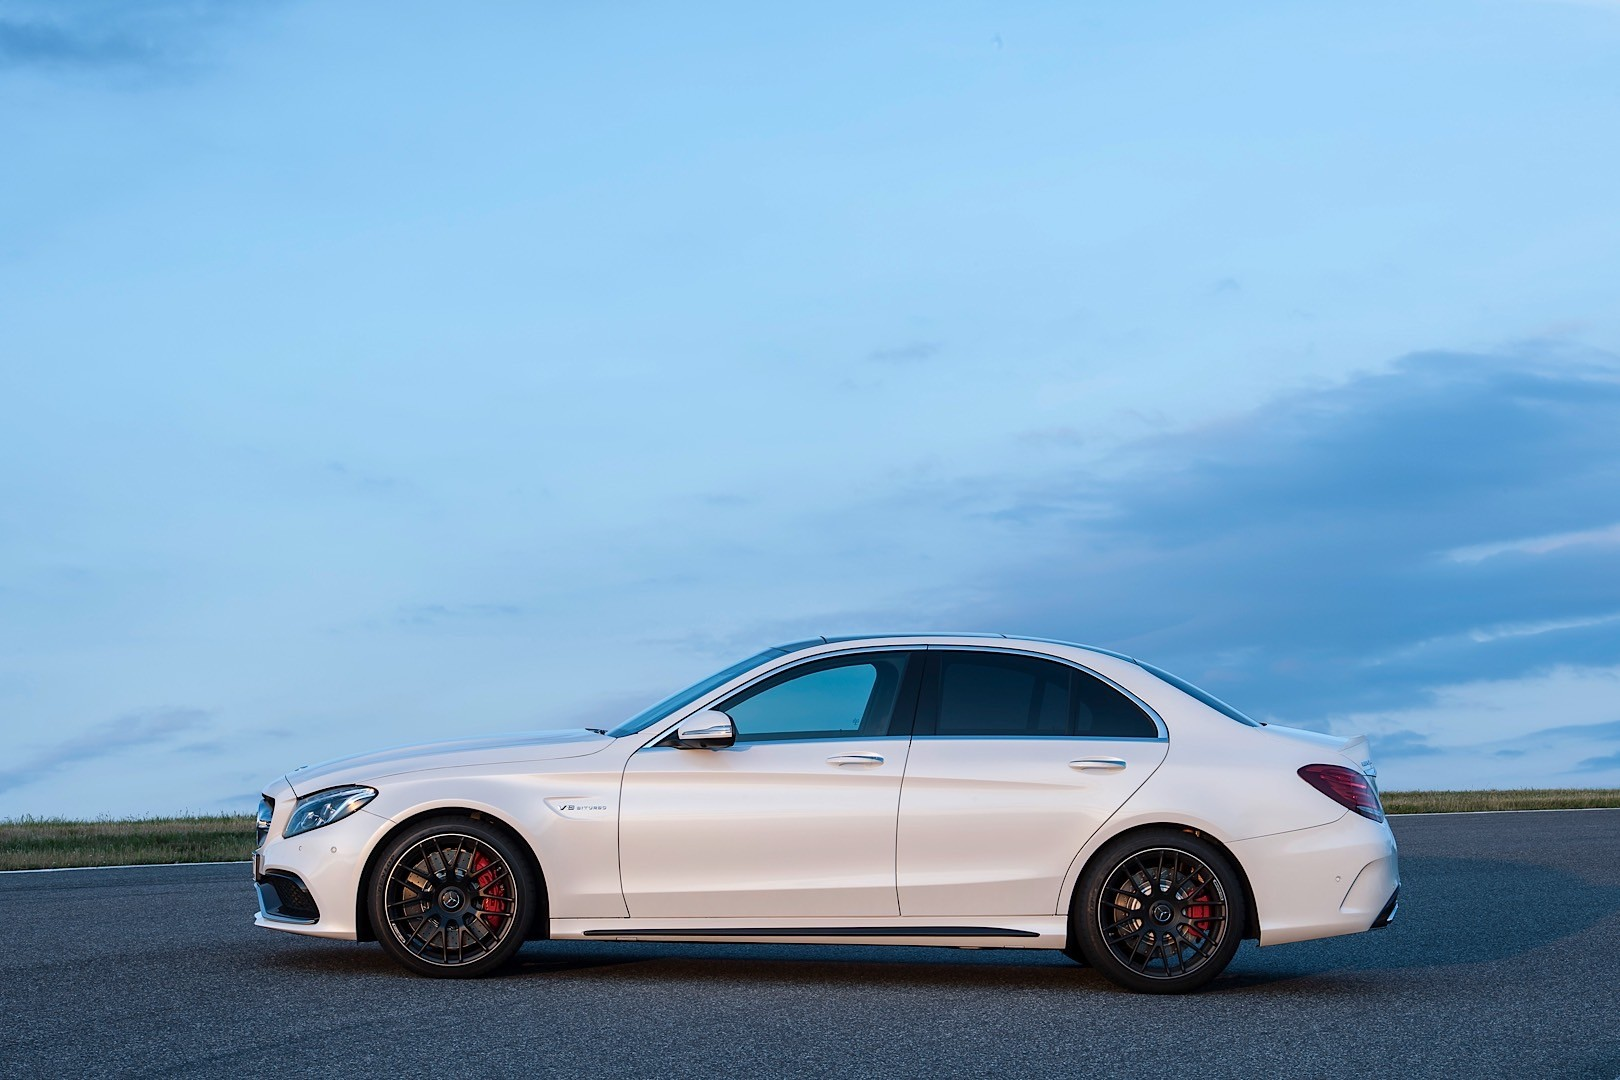 2014 mercedes c63 amg edition 507 us pricing revealed. Black Bedroom Furniture Sets. Home Design Ideas